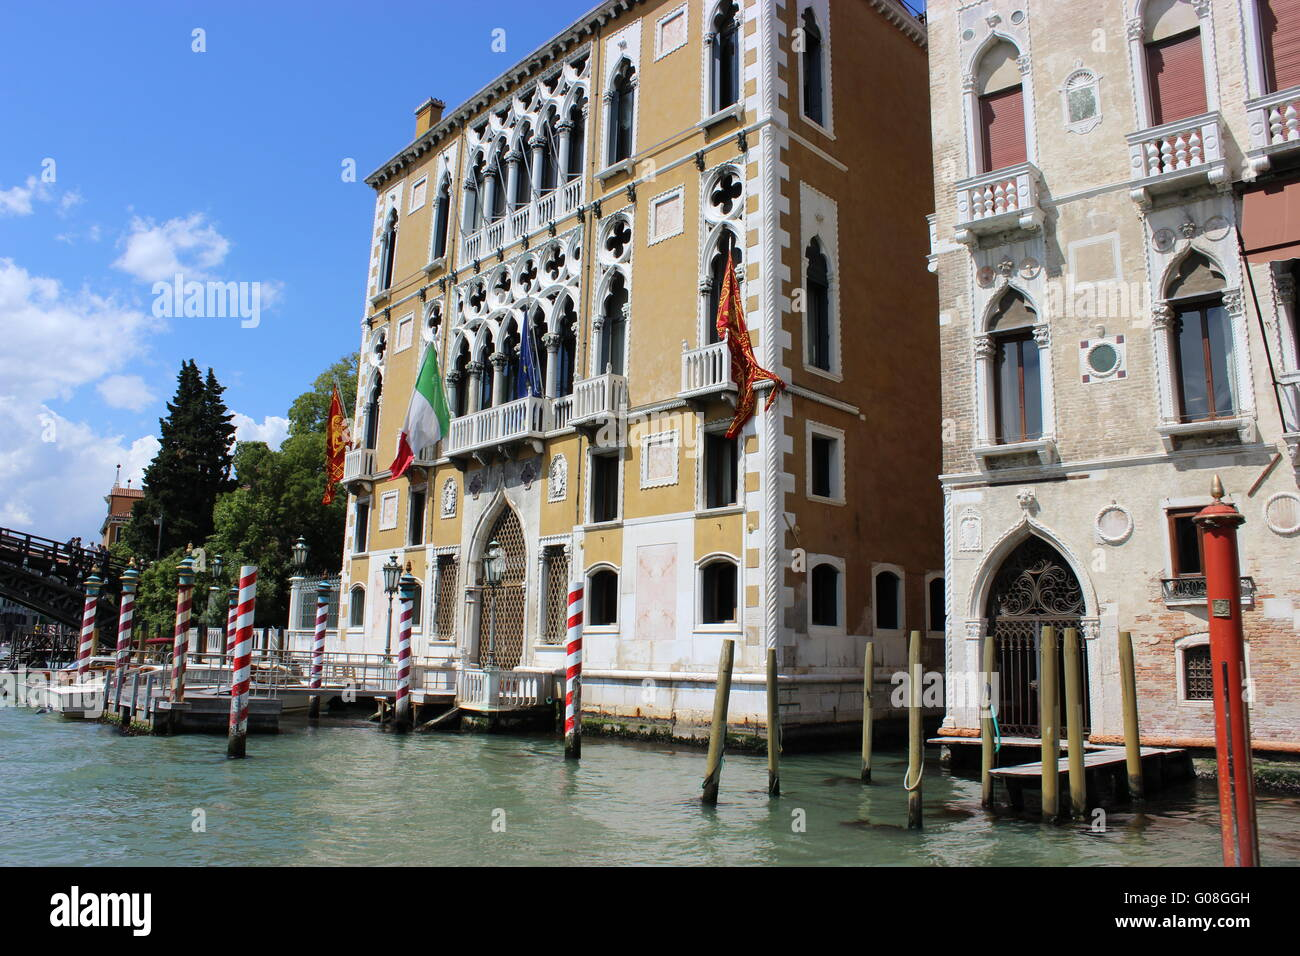 Palaces on the Grand Canal Stock Photo